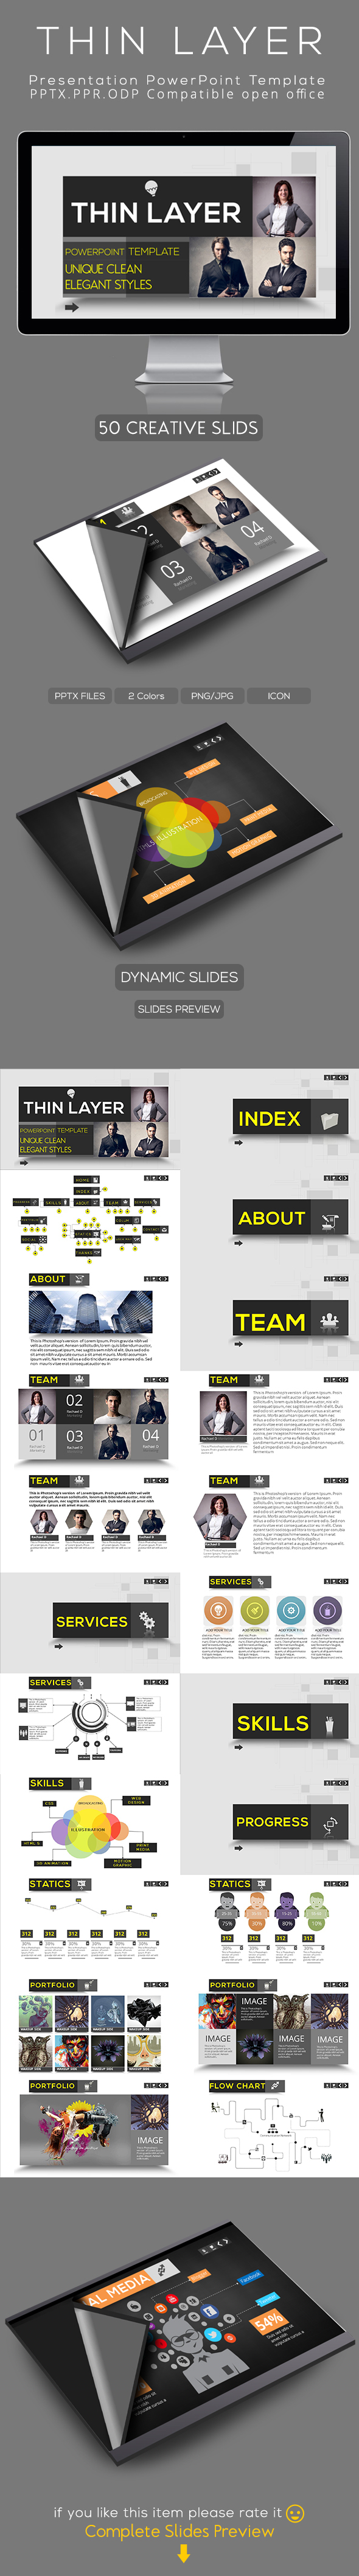 thin layer powerpoint presentation template by rao tariq via